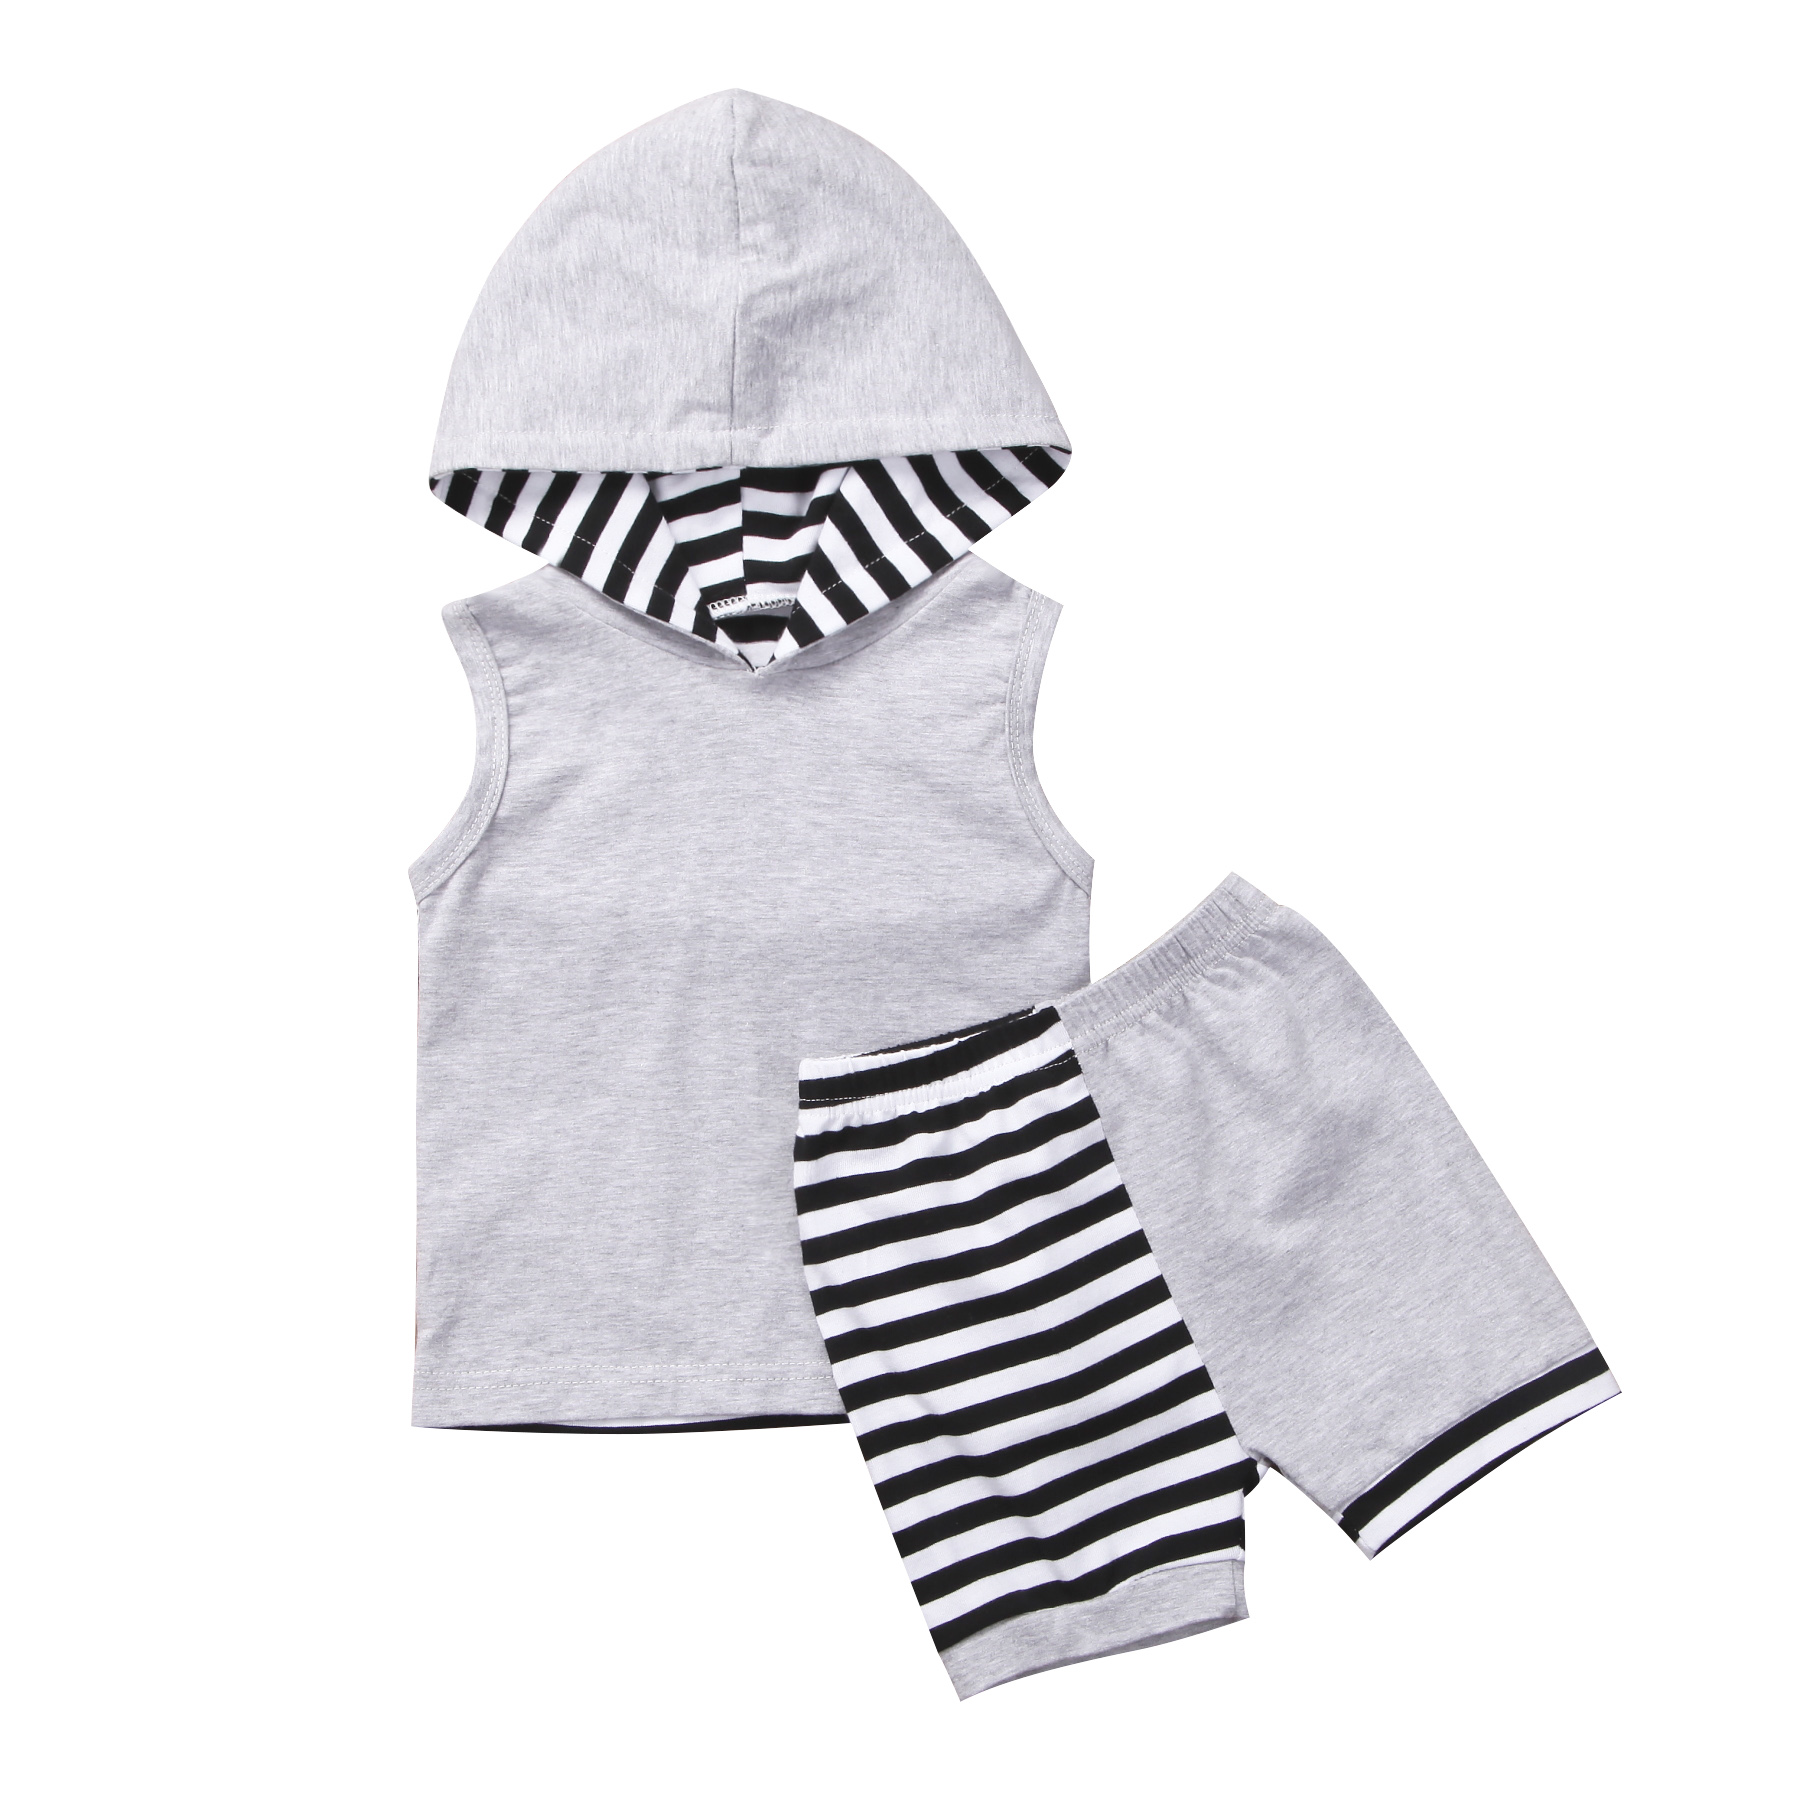 Pudcoco Newborn Infant Baby Boy Cotton Gray Striped Clothes Hoodie Top Short Pant Outfit ...